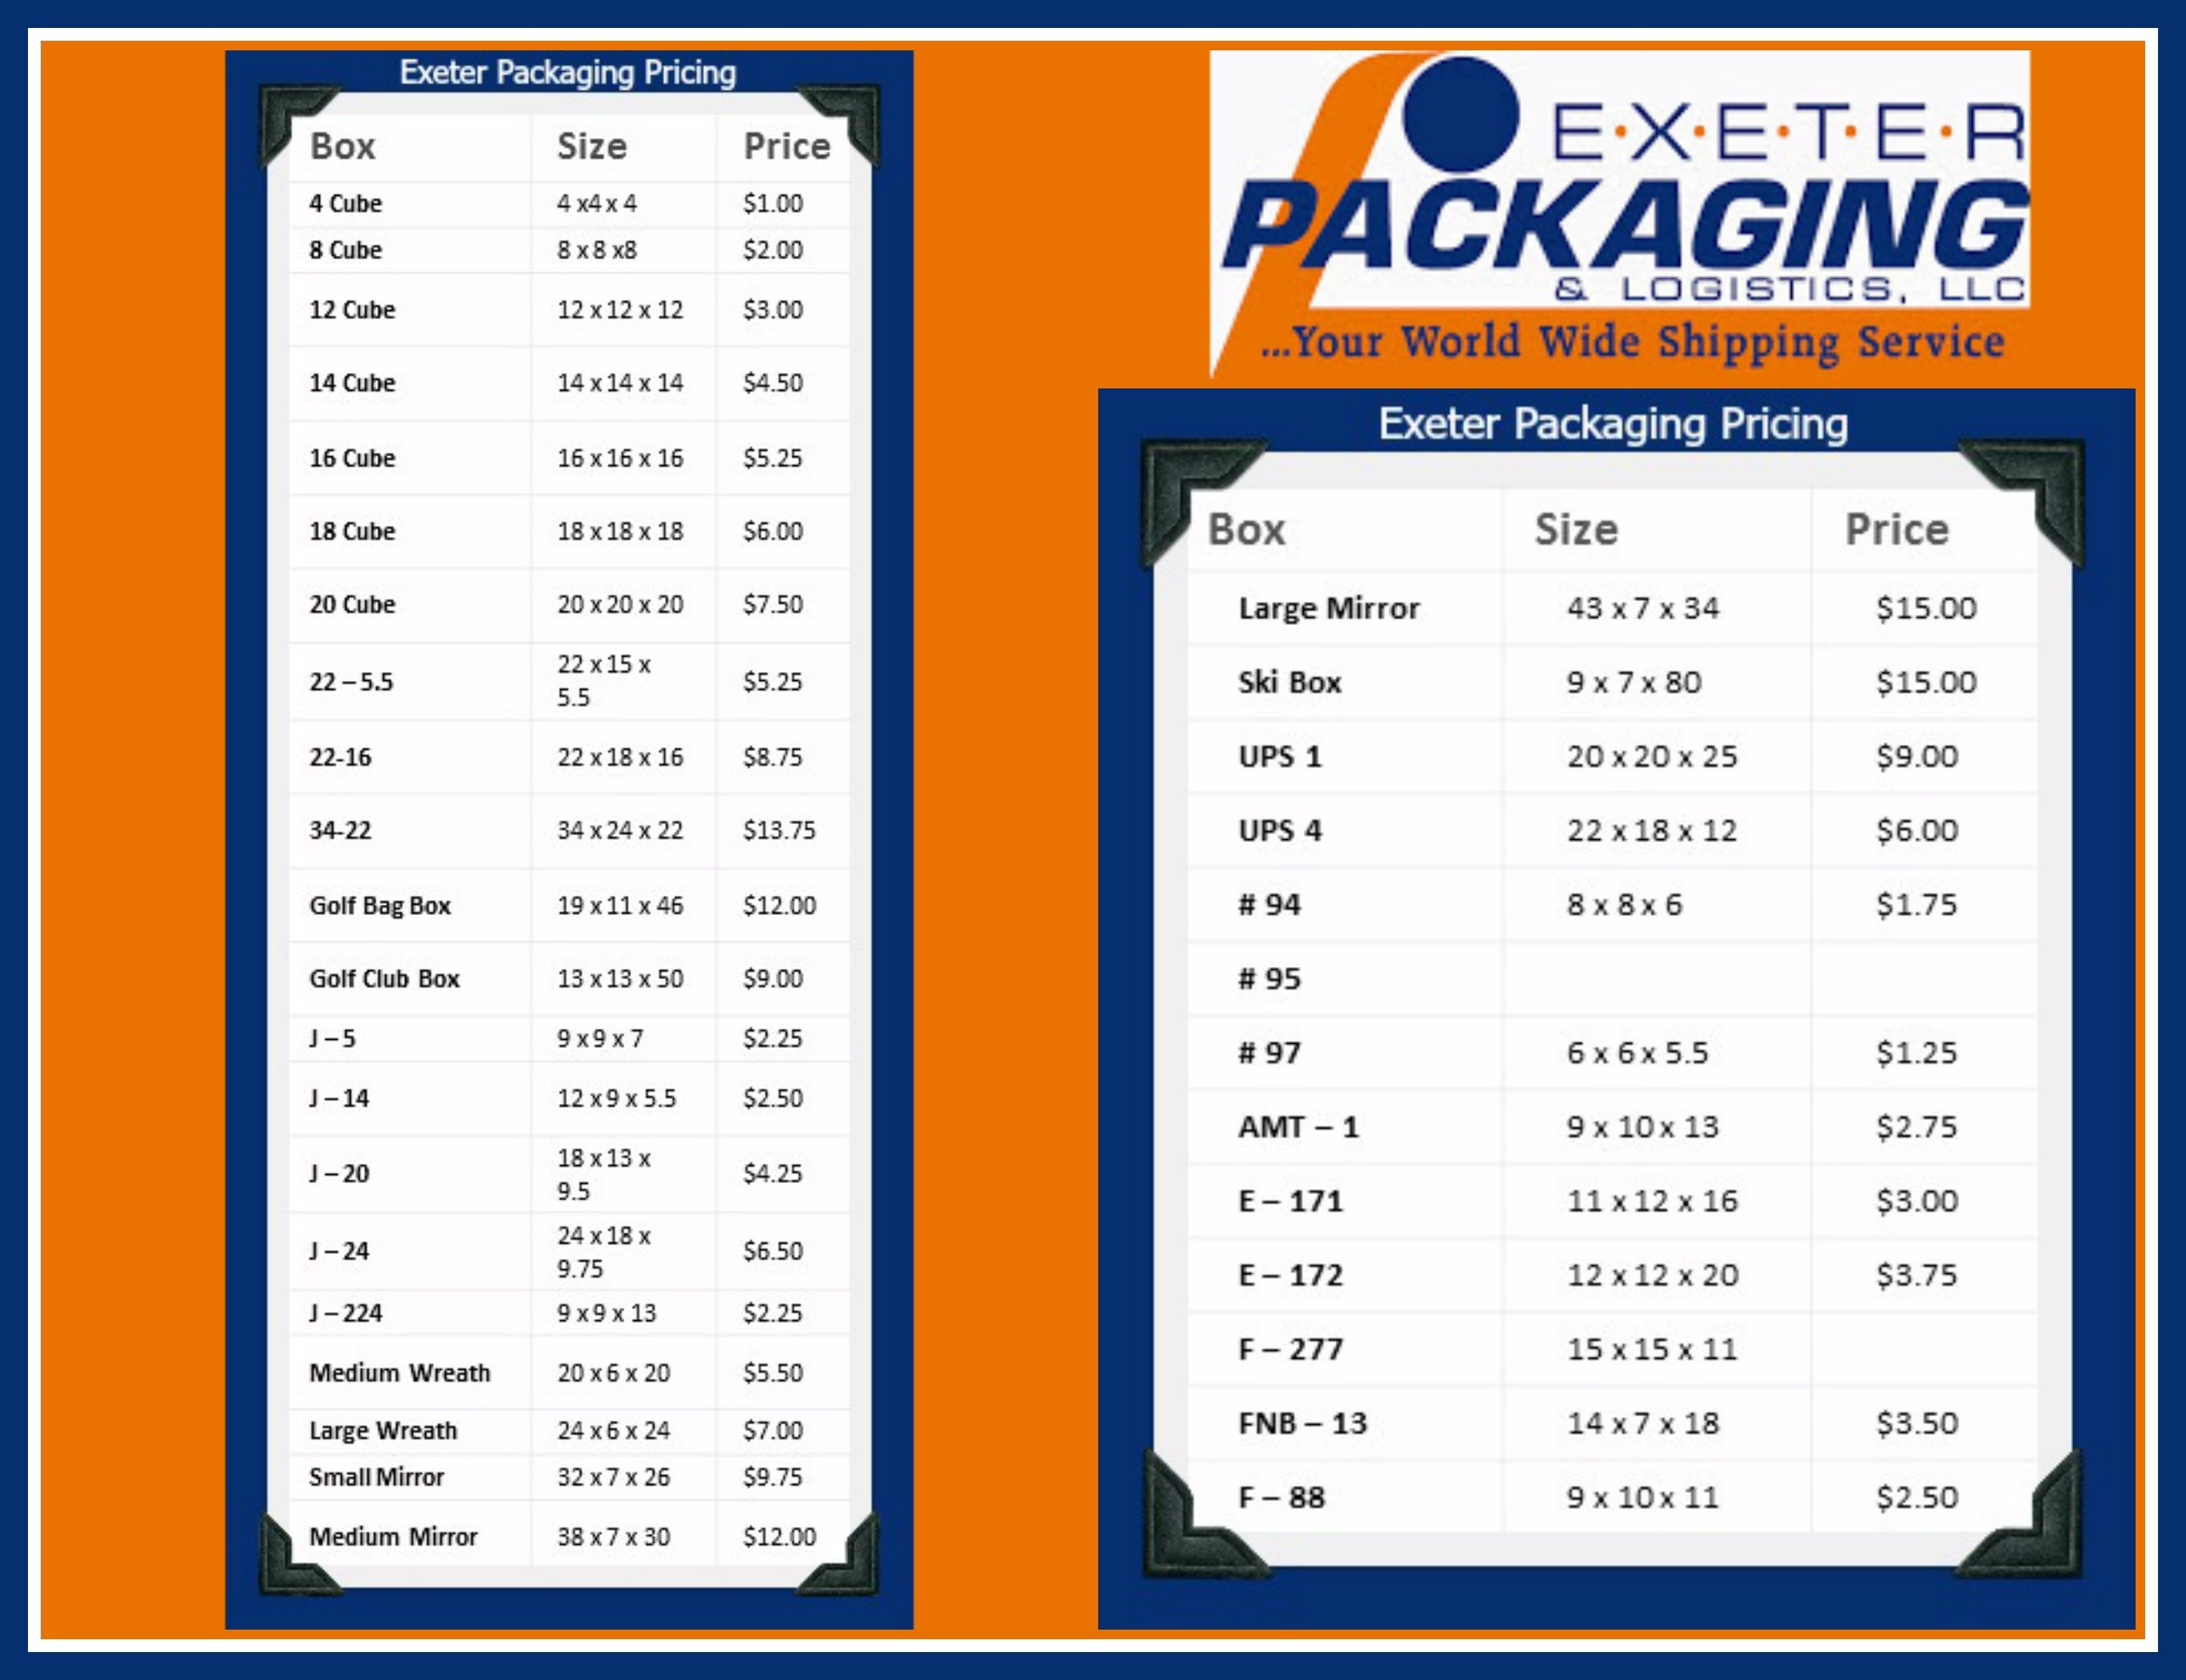 exeter packaging pricing